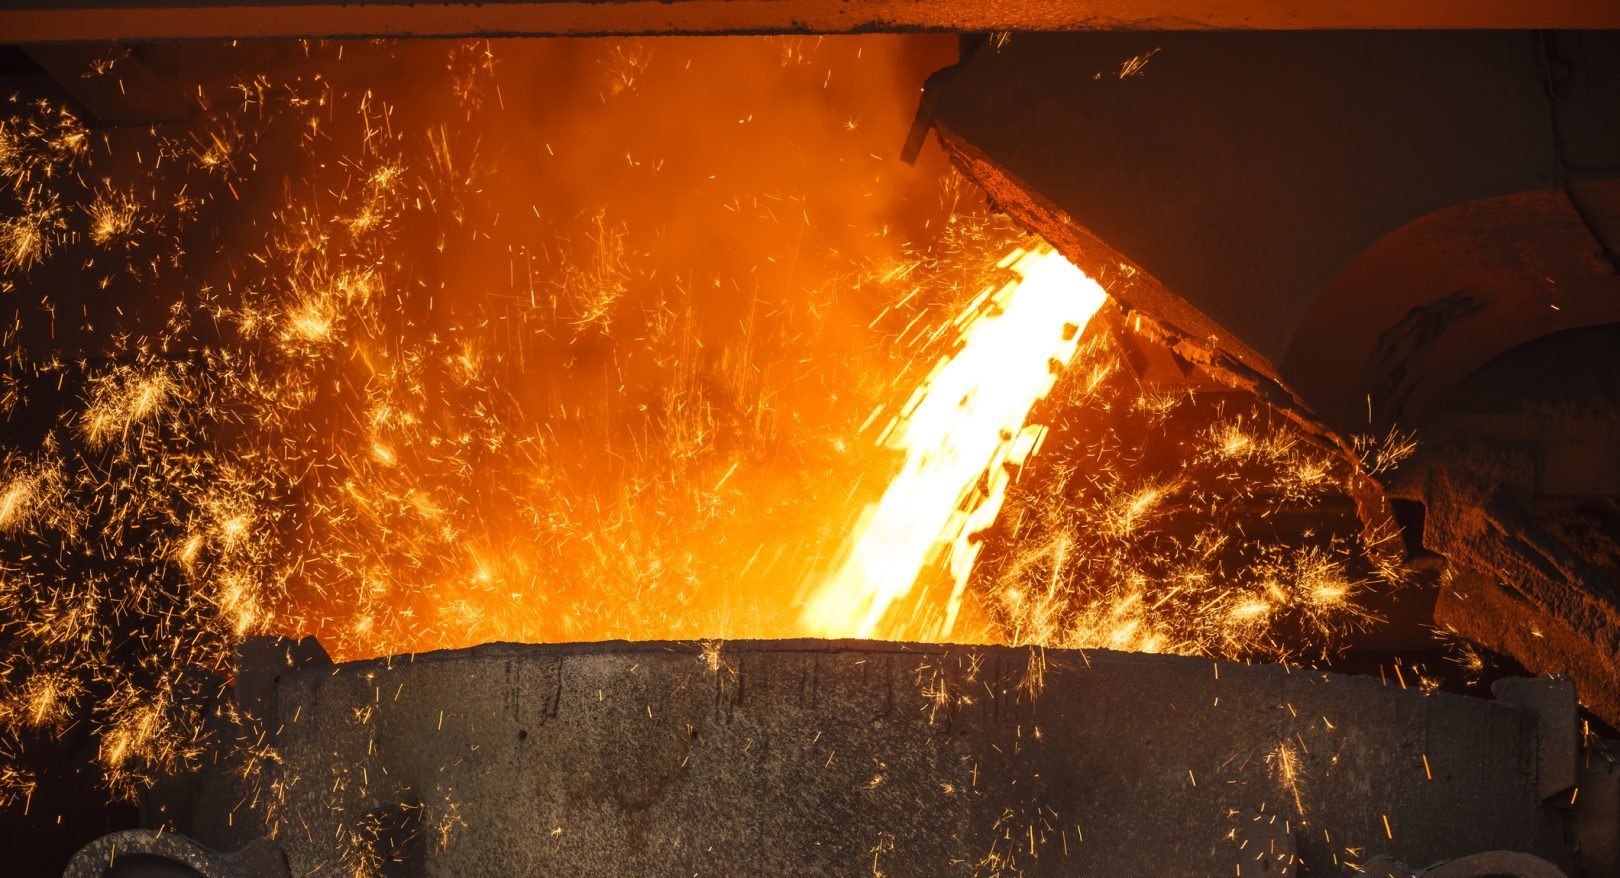 steelworks-melt-molten-steel-background-56752553